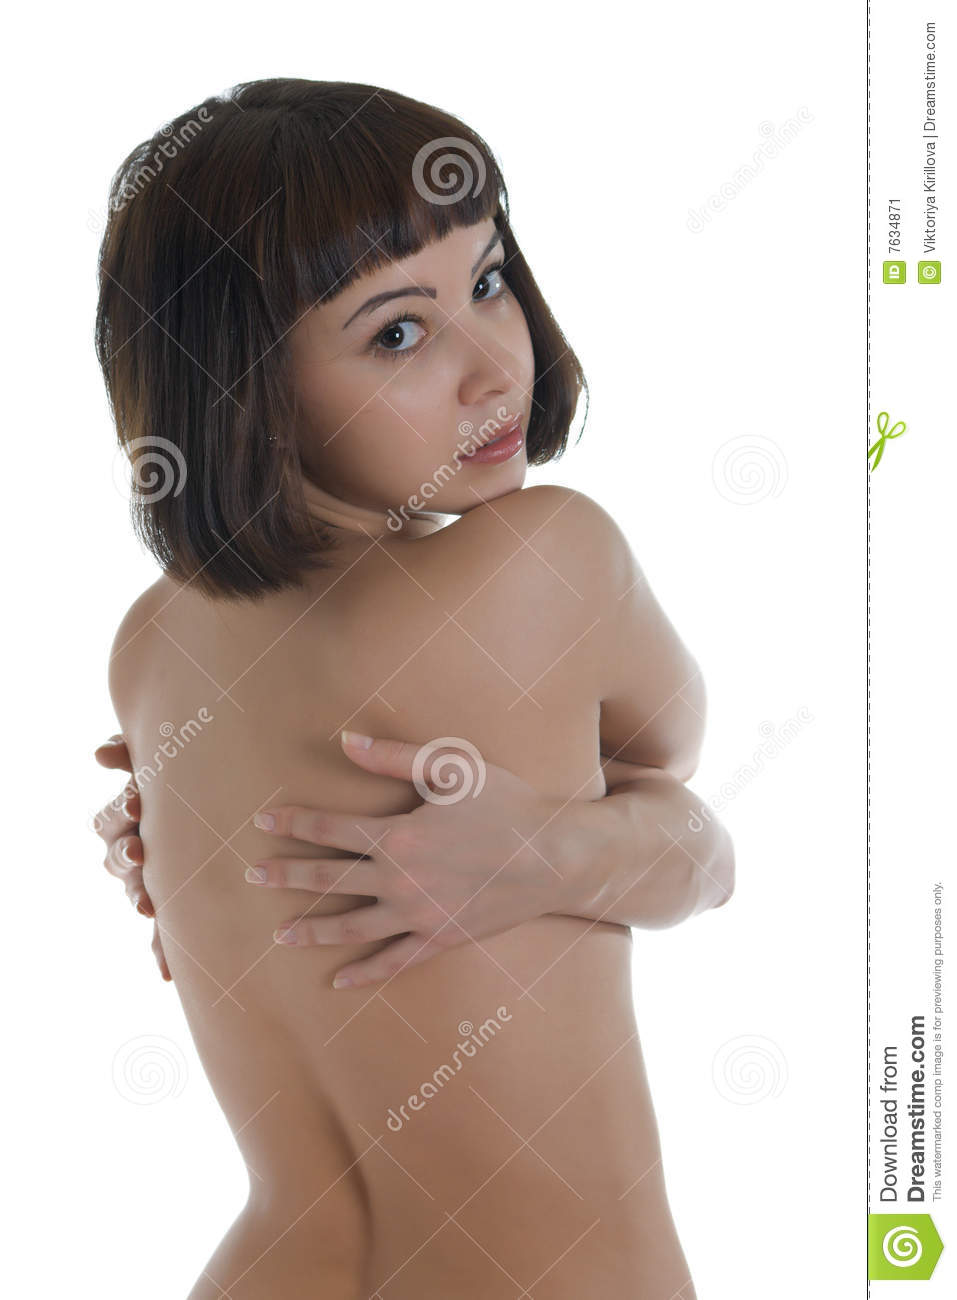 young naked women stock image. image of body, glamour - 7634871